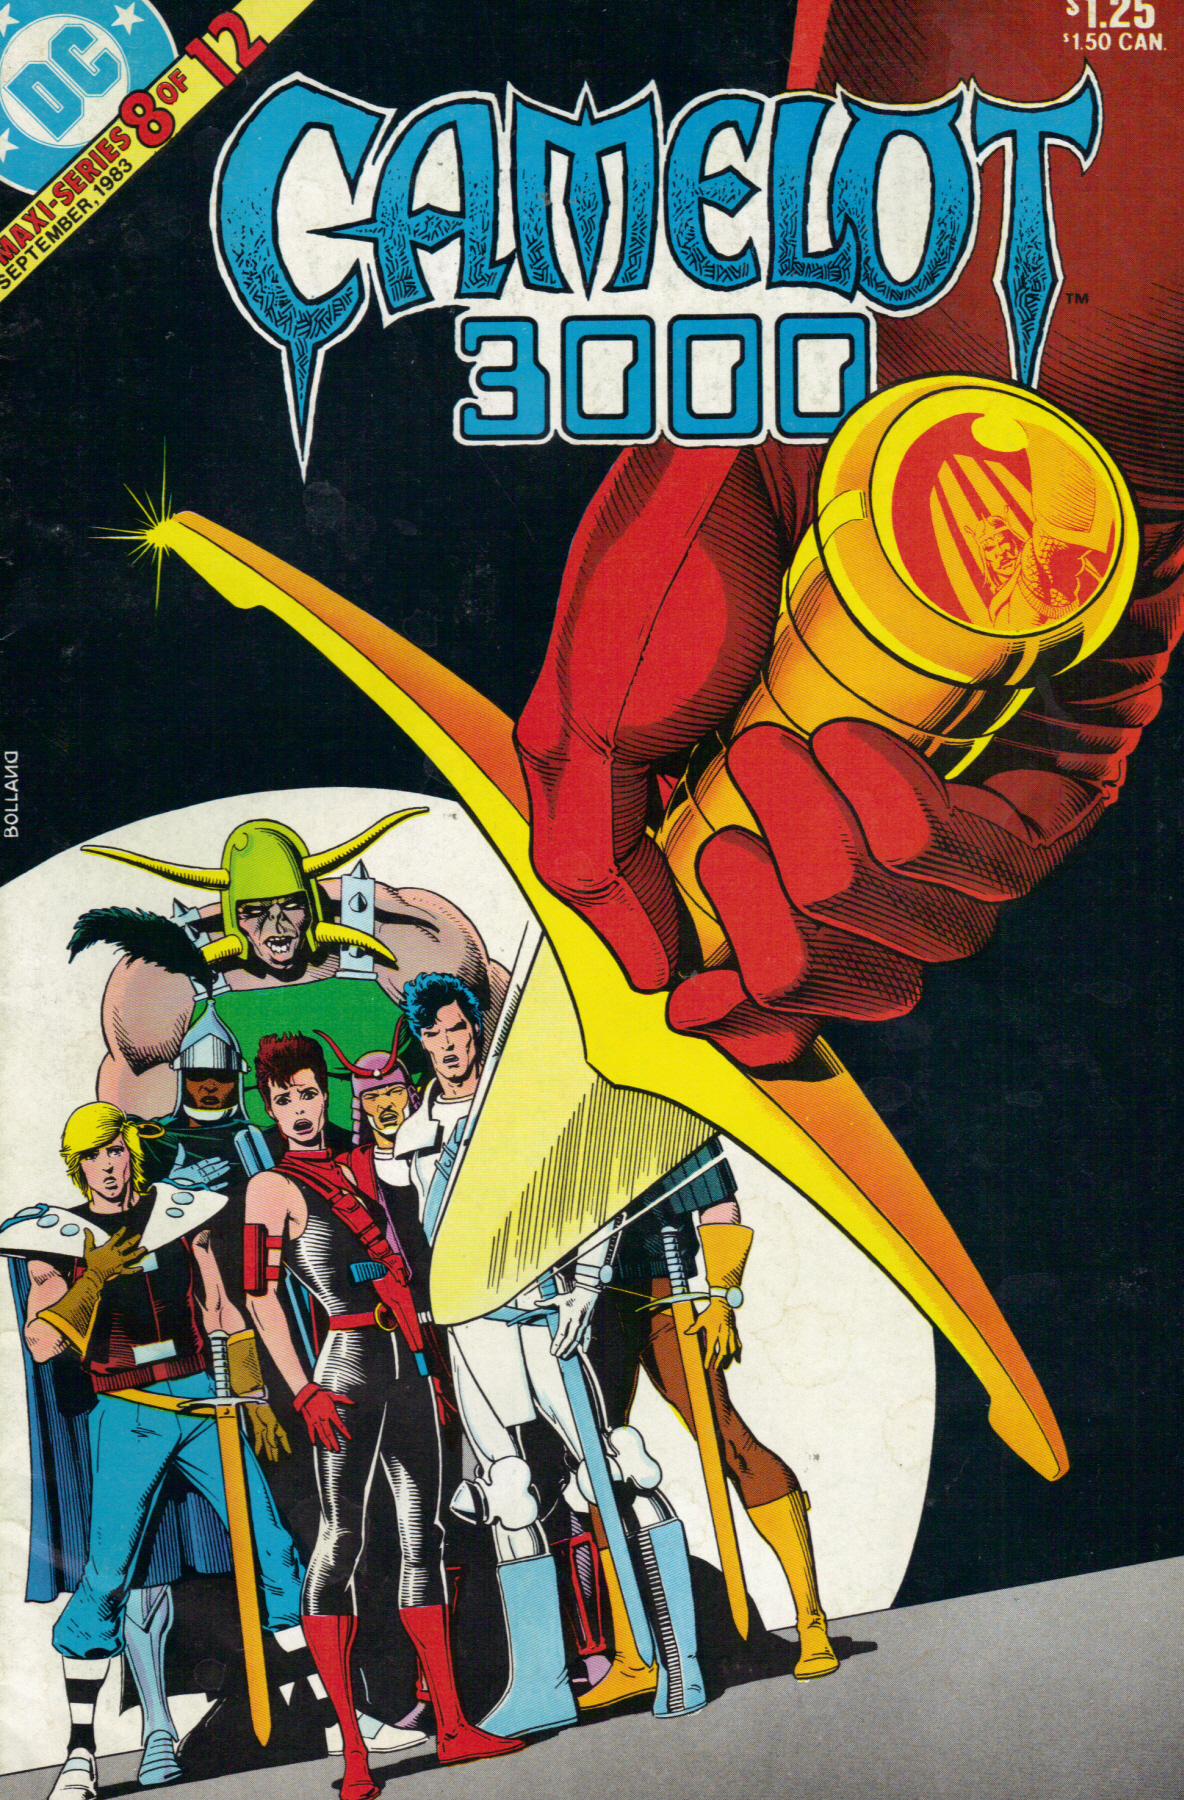 Camelot 3000 Vol 1 8 Dc Database Fandom Powered By Wikia